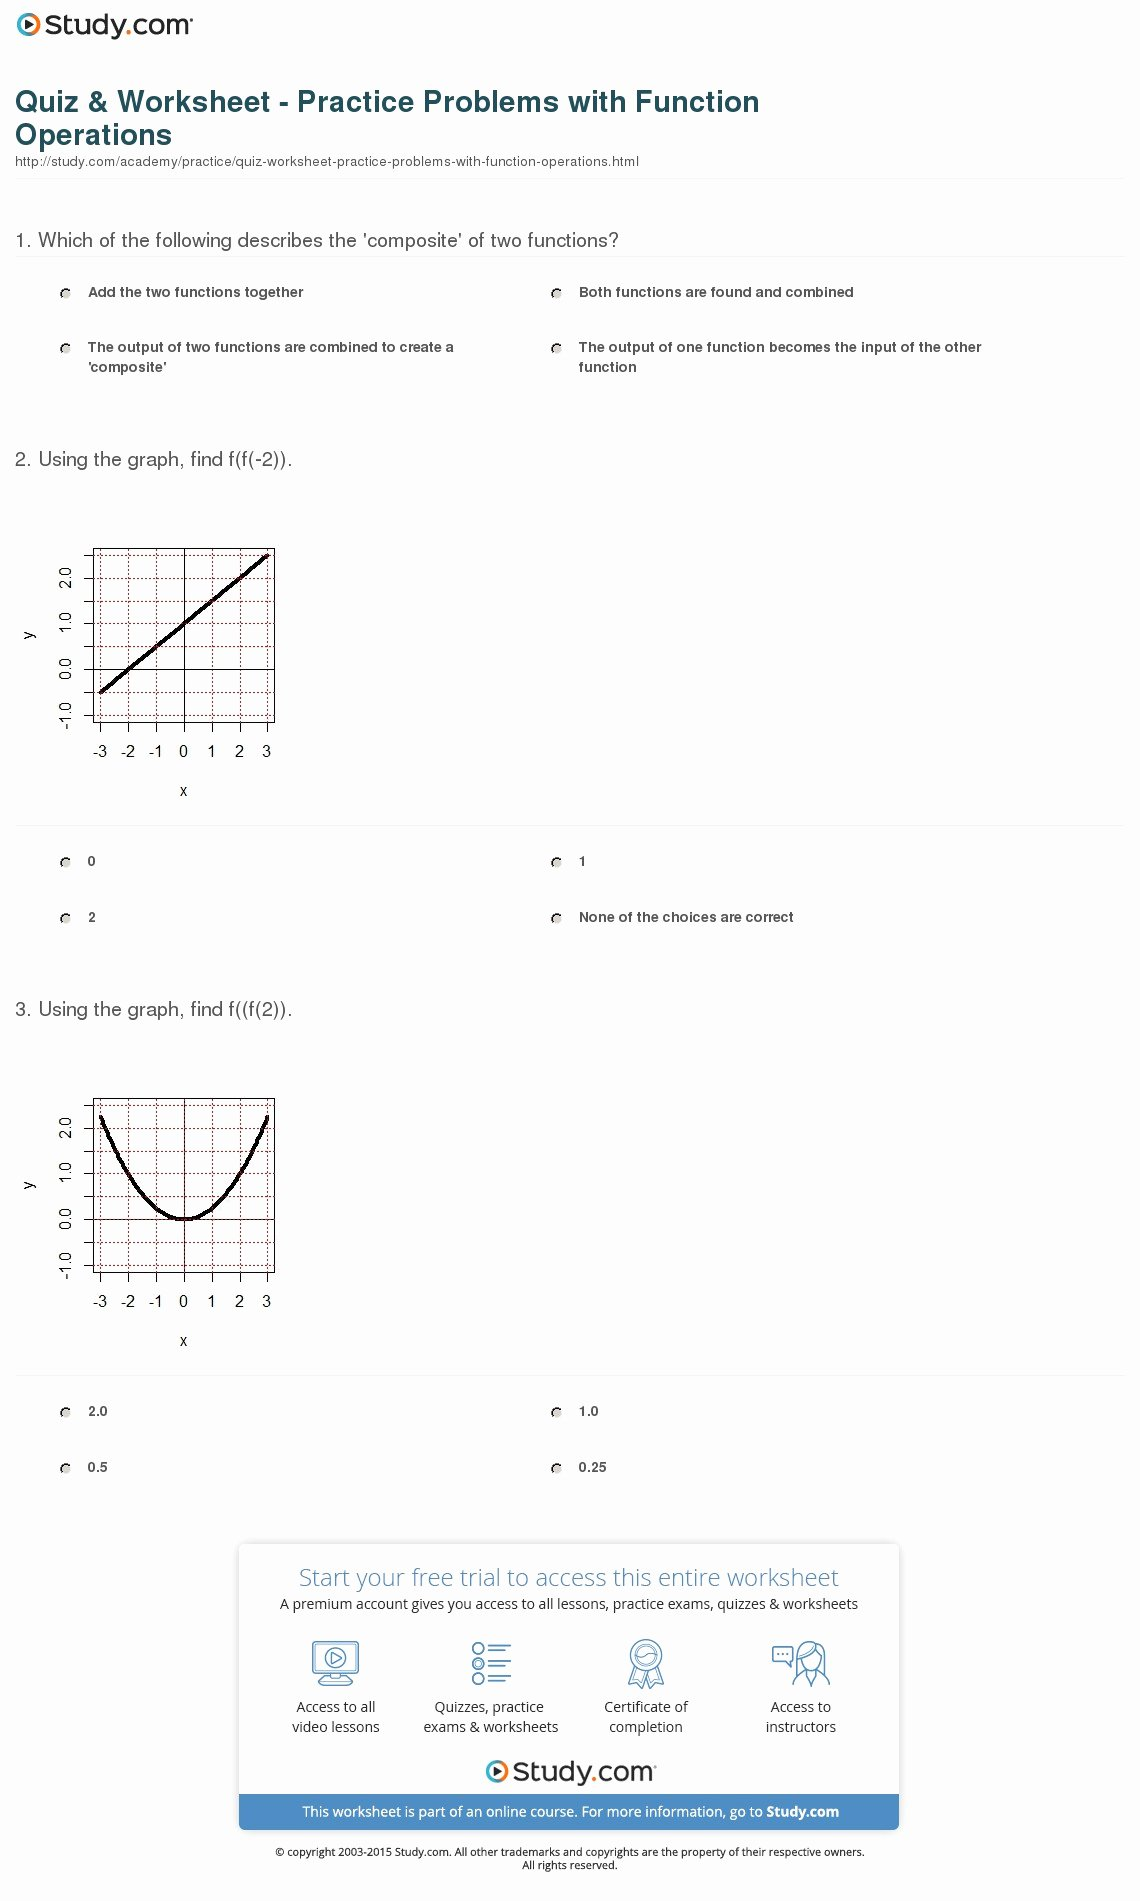 Composite Function Worksheet Answer Key Fresh Quiz & Worksheet Practice Problems with Function